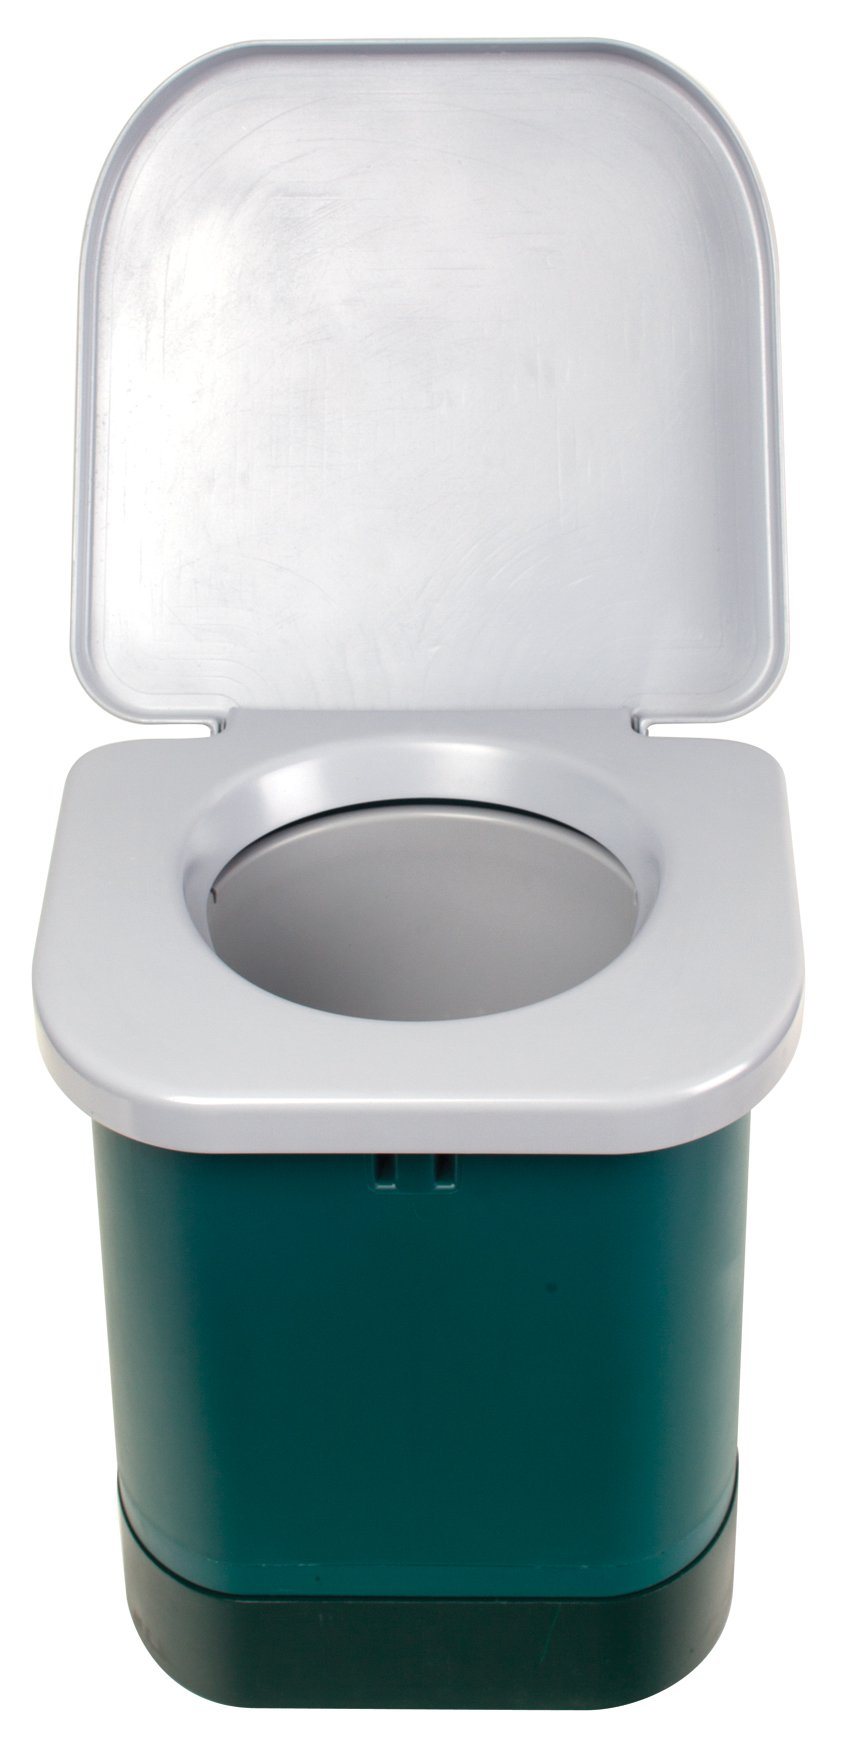 Stansport 273-100 Portable Camp Toilet (14 x 14 x 14 - Inch)